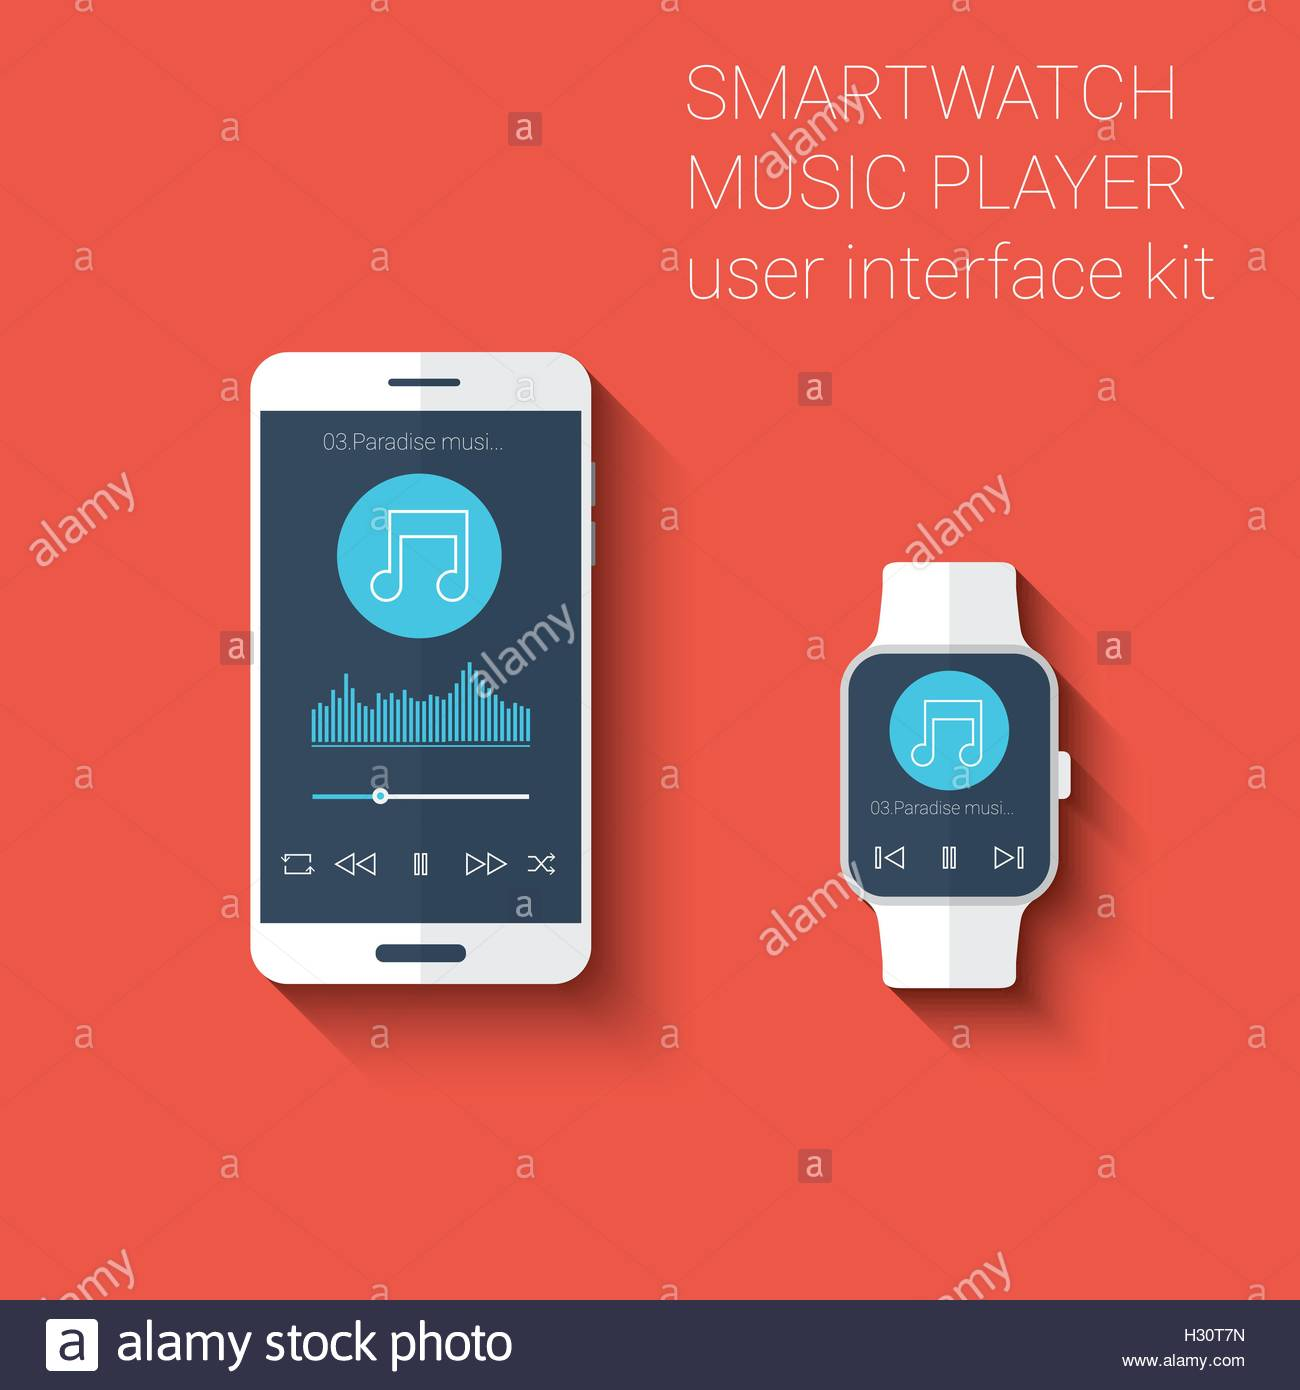 Smartphone and smartwatch music player user interface icons kit. Wearable technology concept in modern flat design - Stock Image